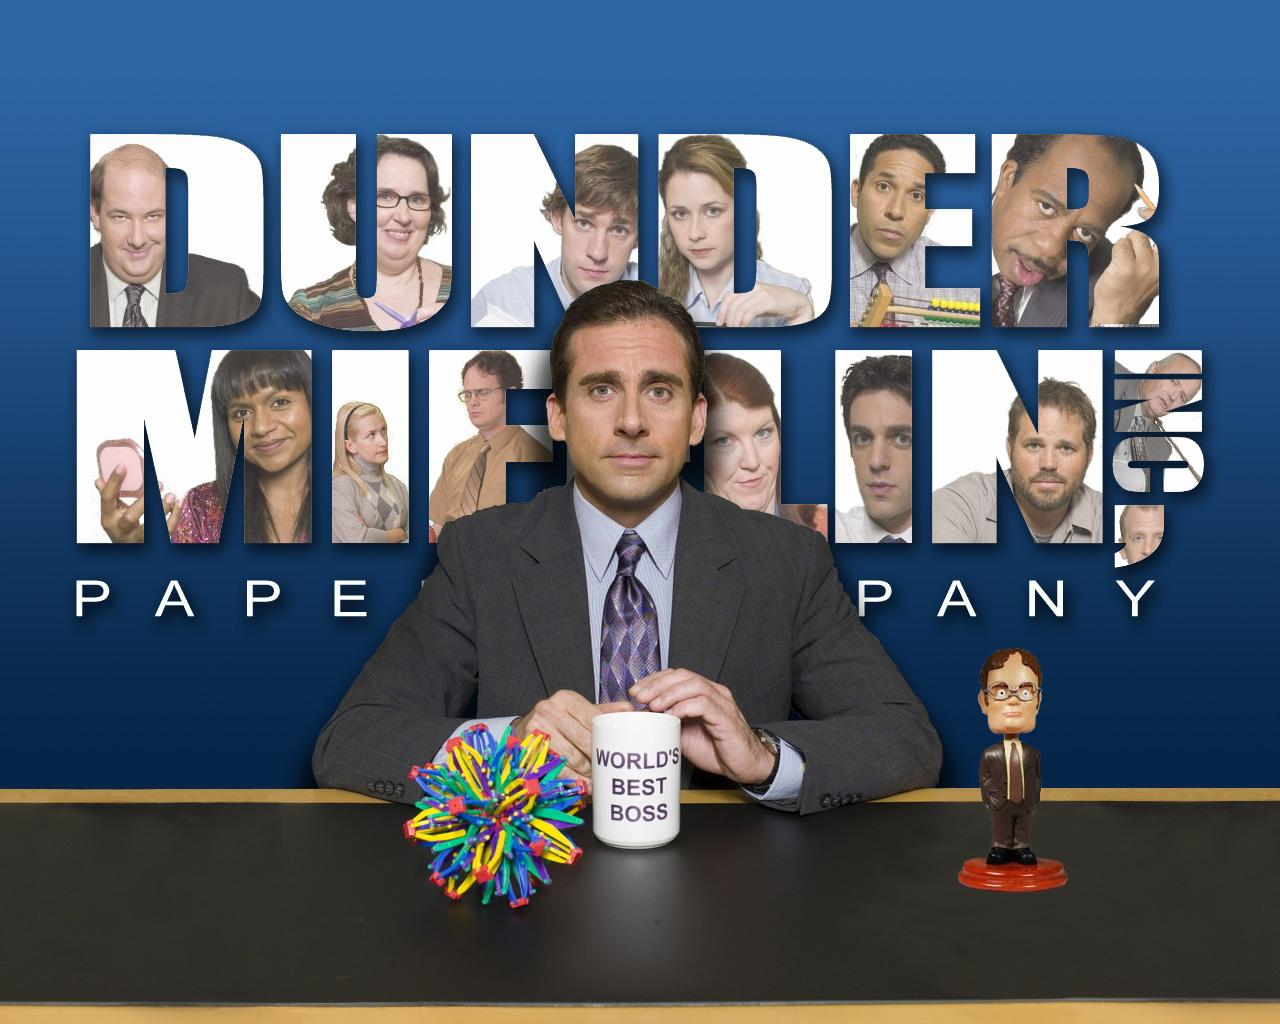 The Office Wallpapers Wallpaper Cave